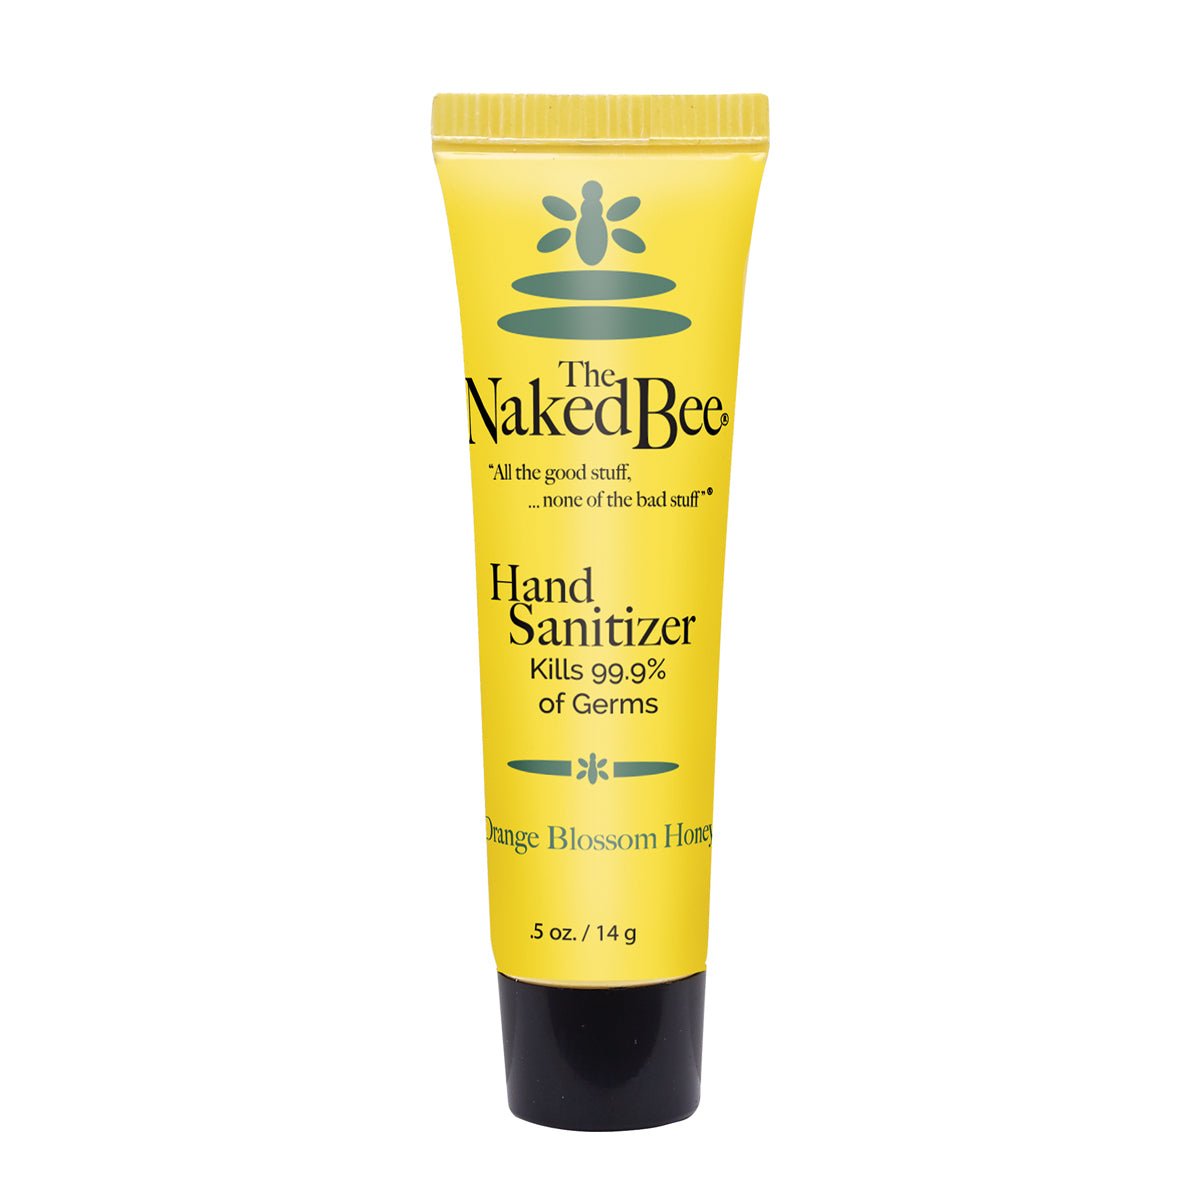 The Naked Bee Products | A Blissfully Beautiful Boutique